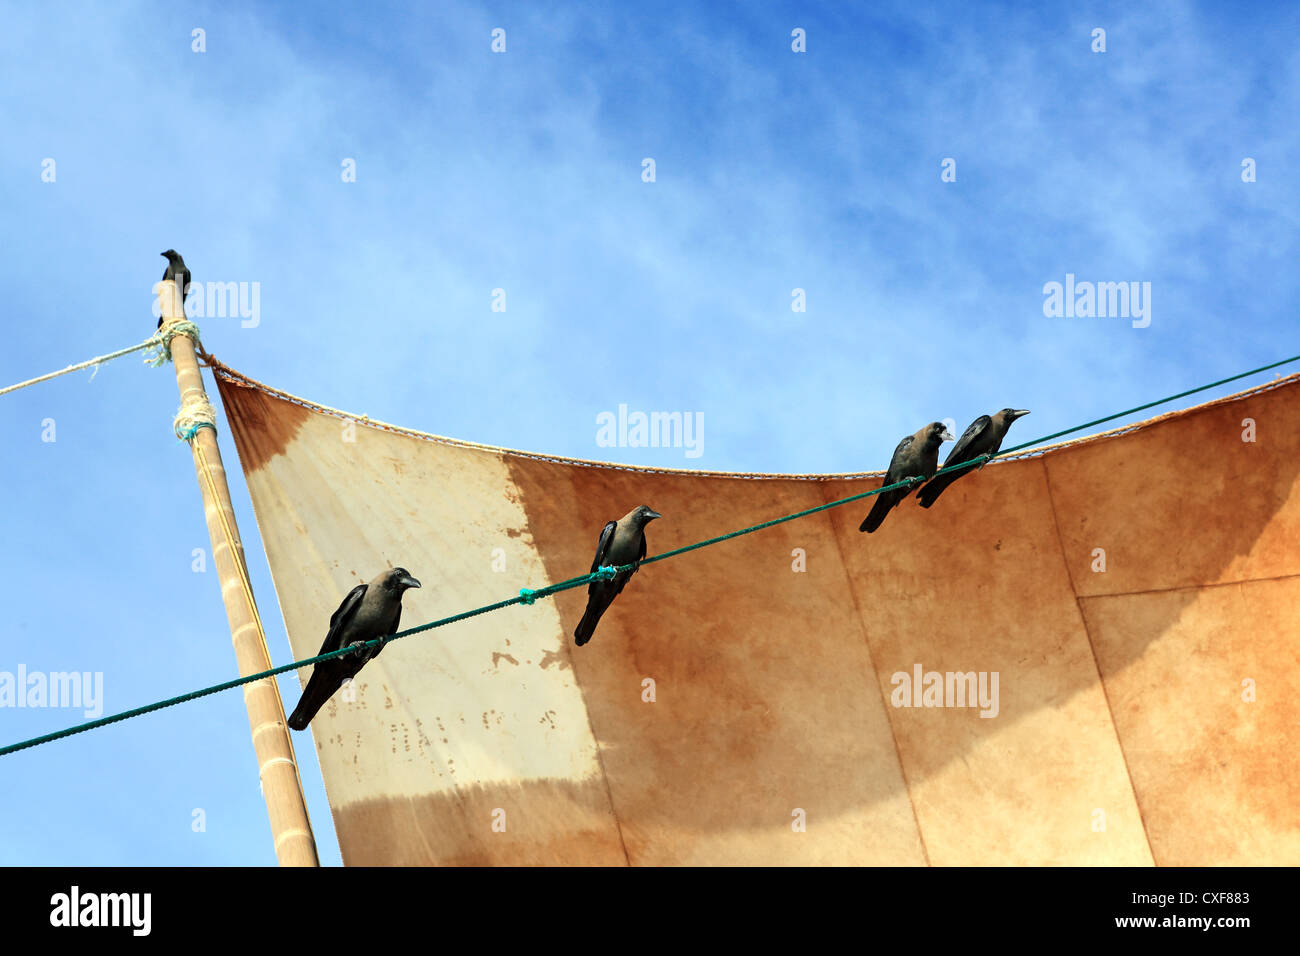 Crows perched on the sail of catamaran fishing boat waiting for scraps on Negombo beach, Sri Lanka. - Stock Image